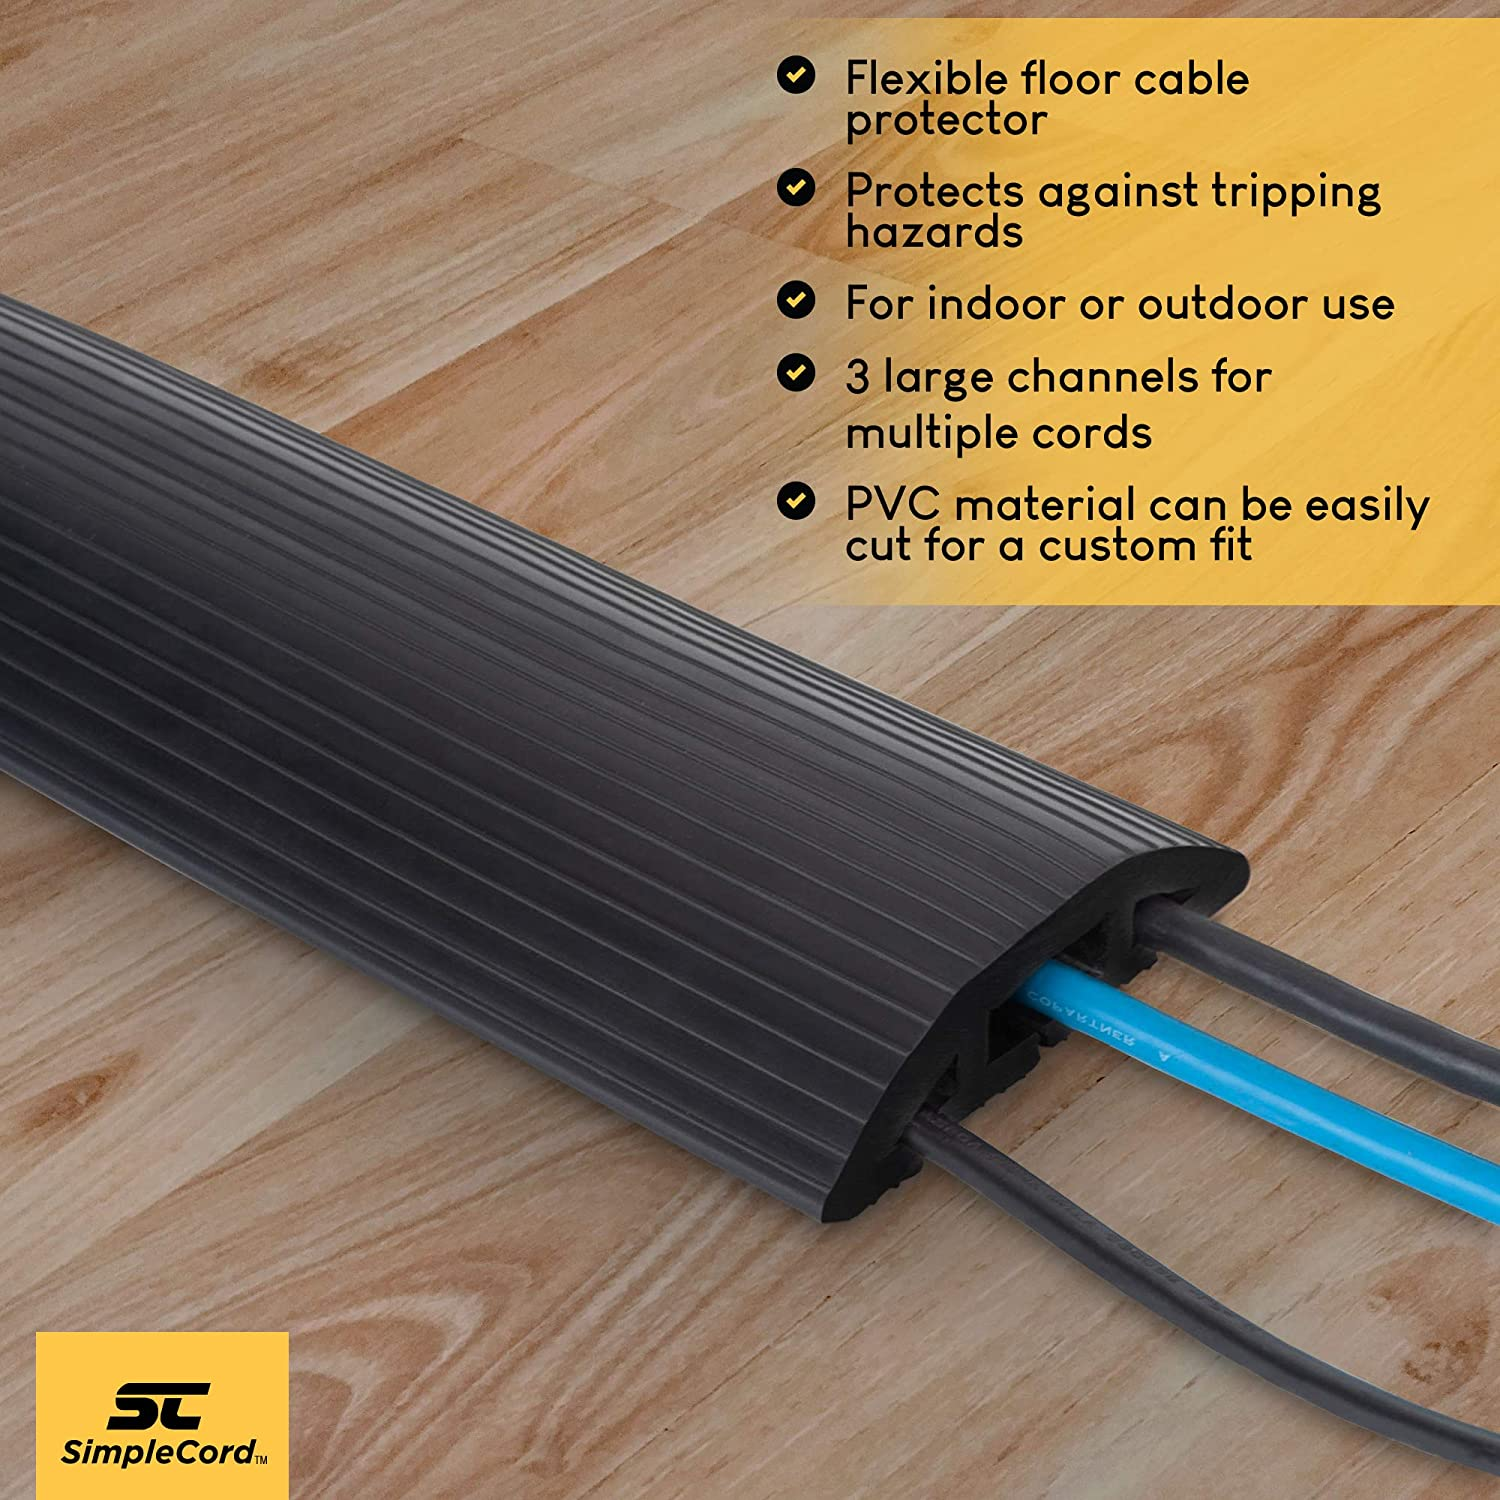 10 Ft Black Duct Cord Protector Covers Cables or Cords Floor Cable Cover 3